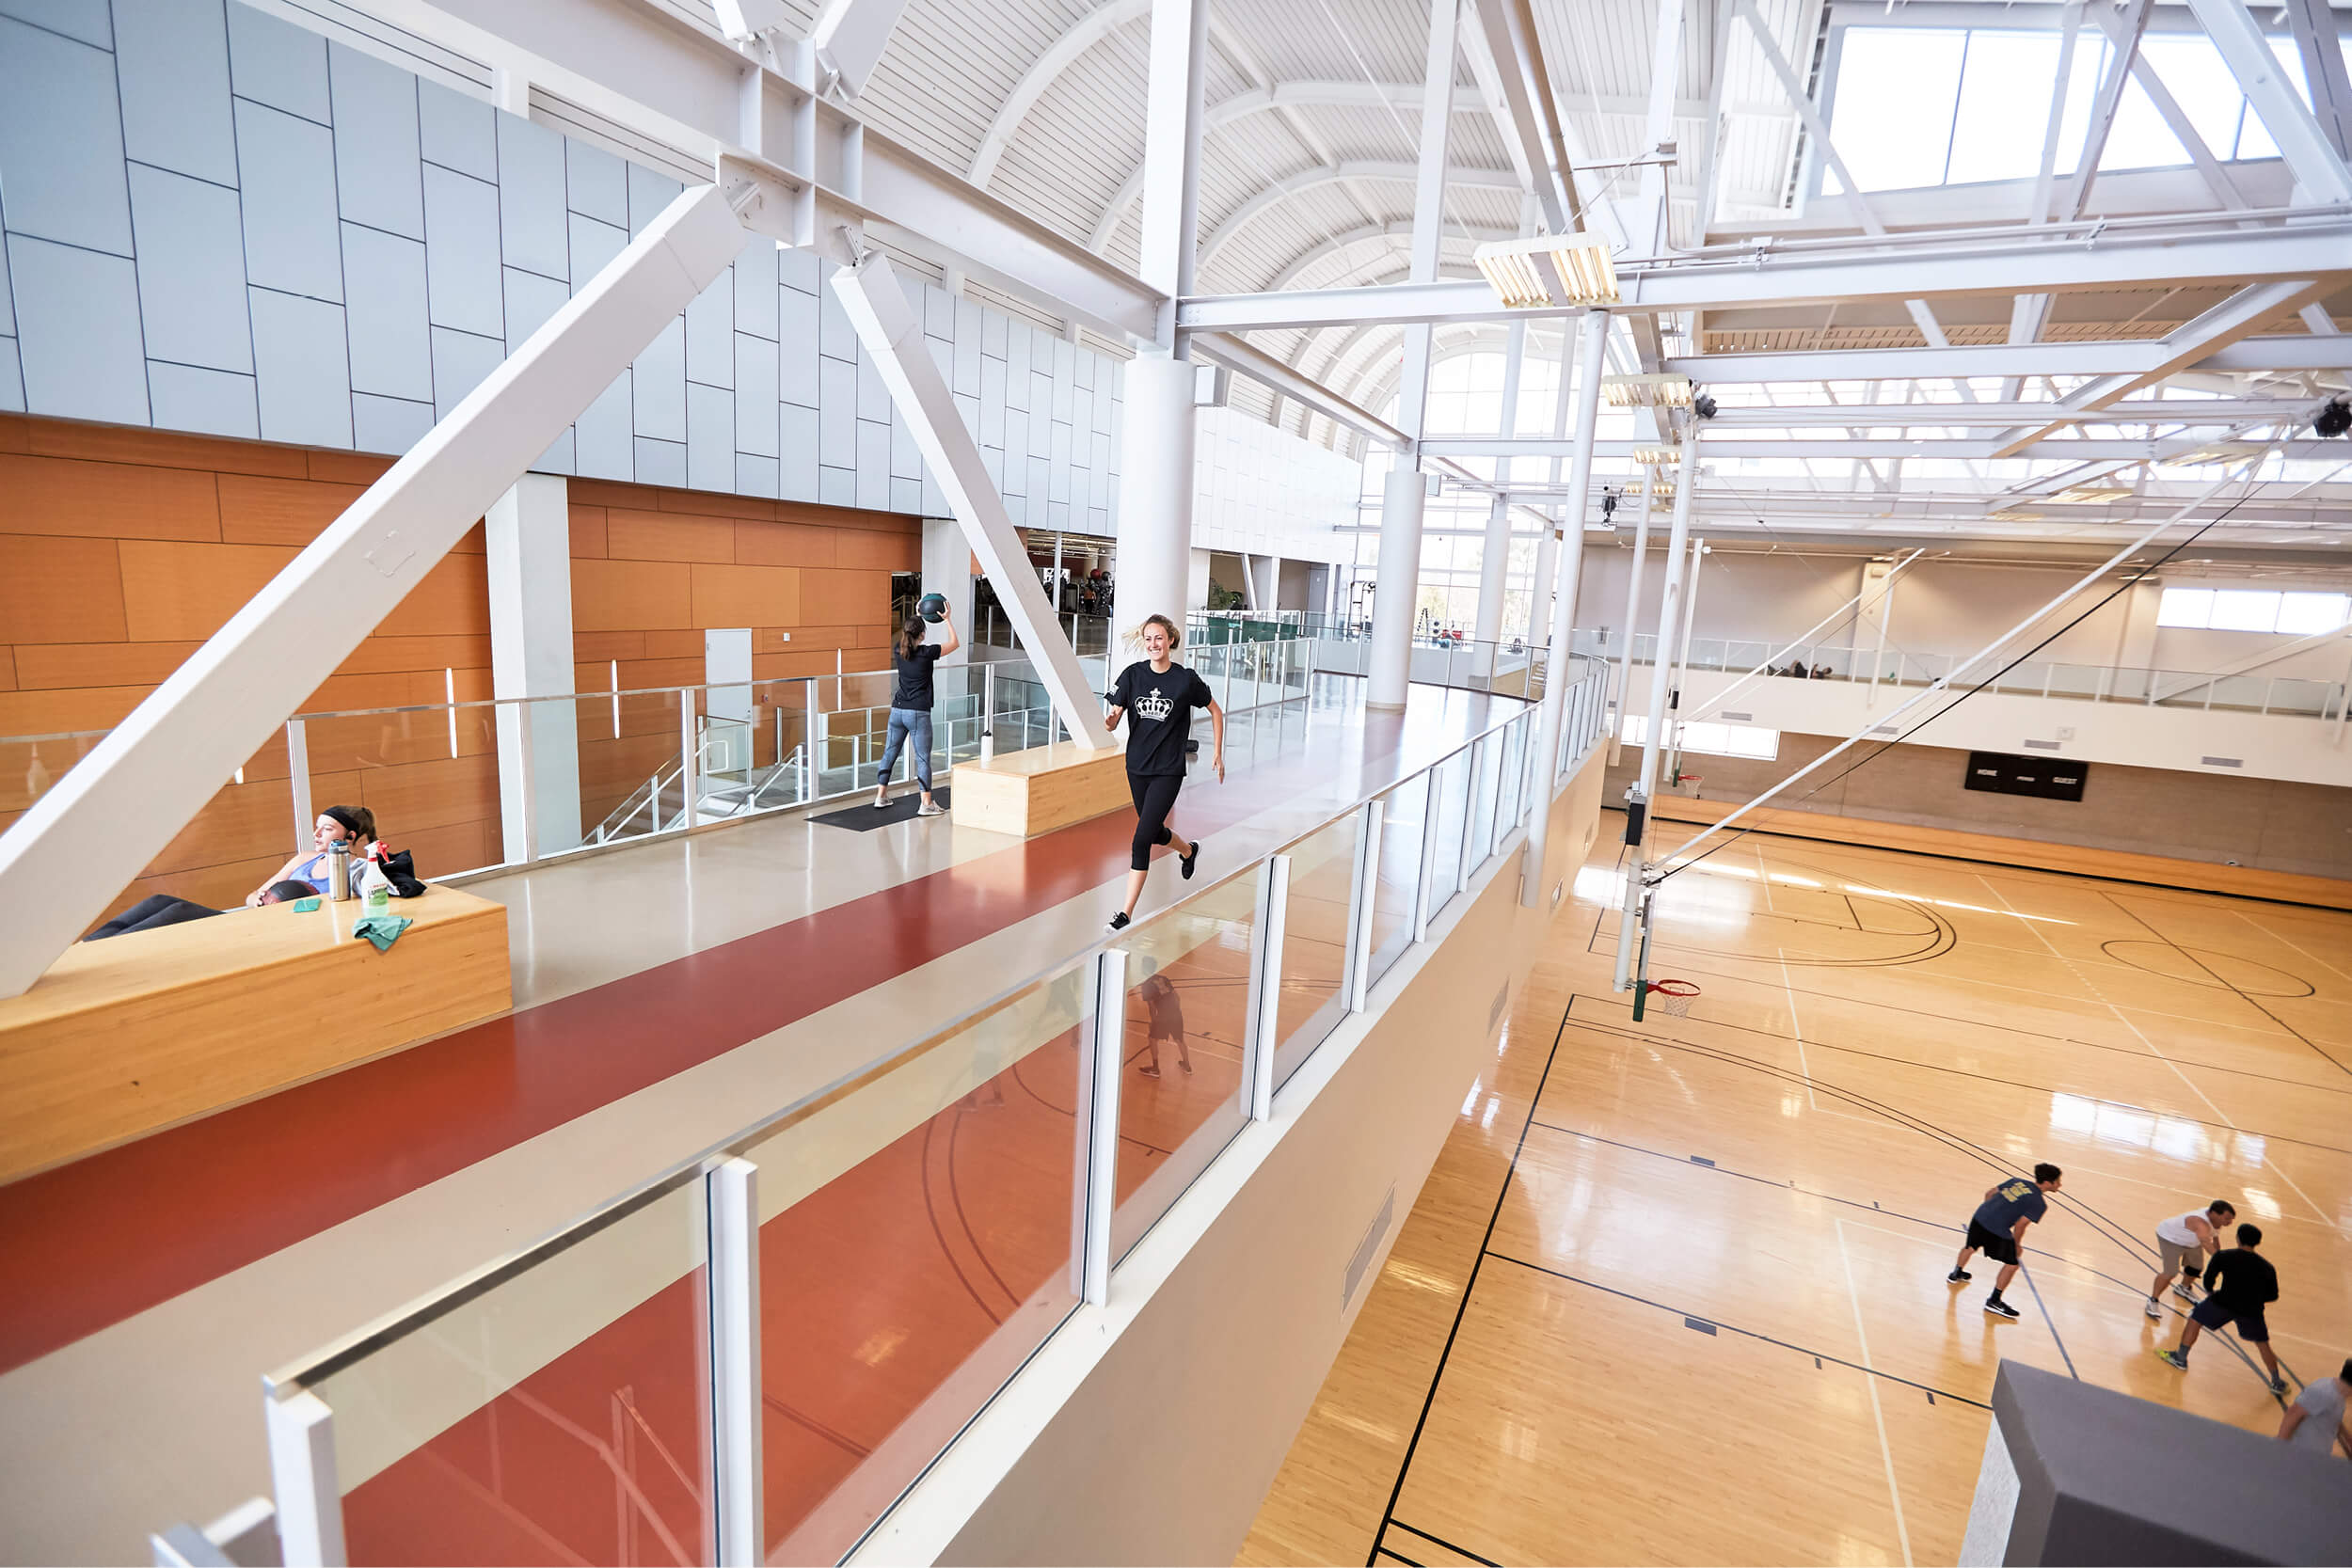 A student runs on the indoor track in the Recreation Center